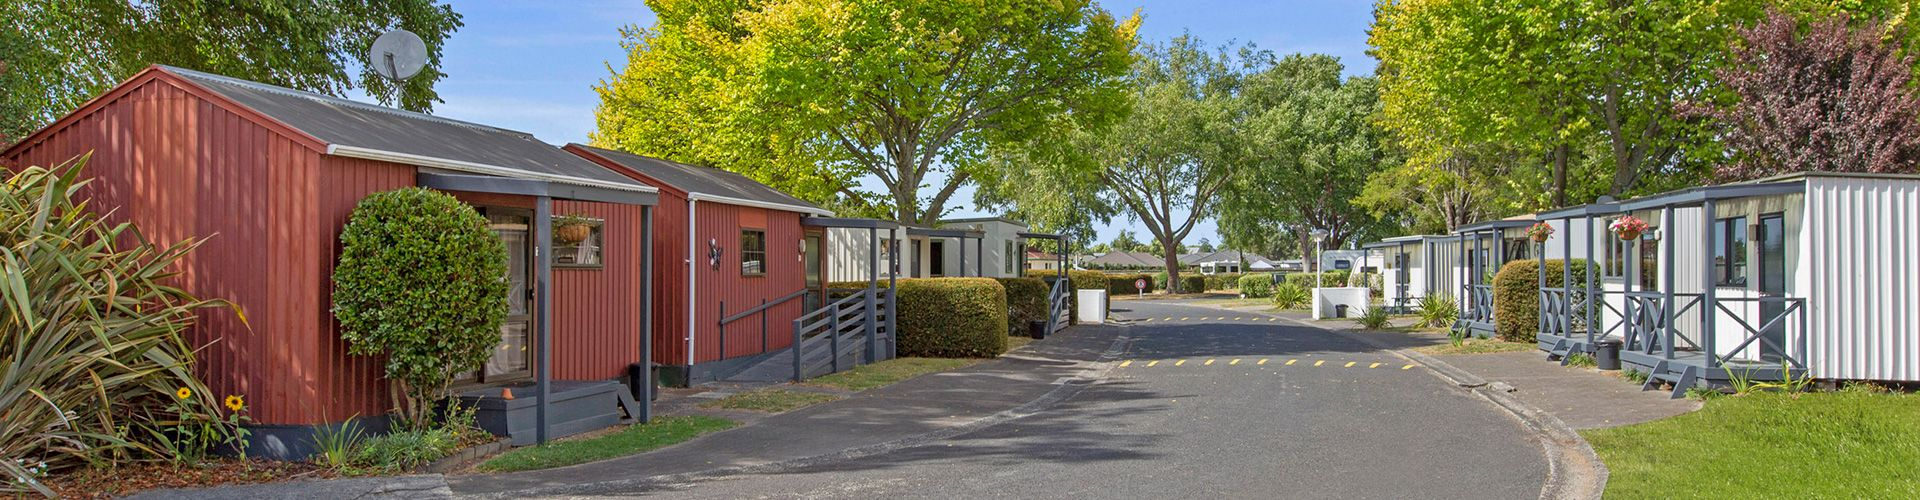 hamilton accommodation cabins